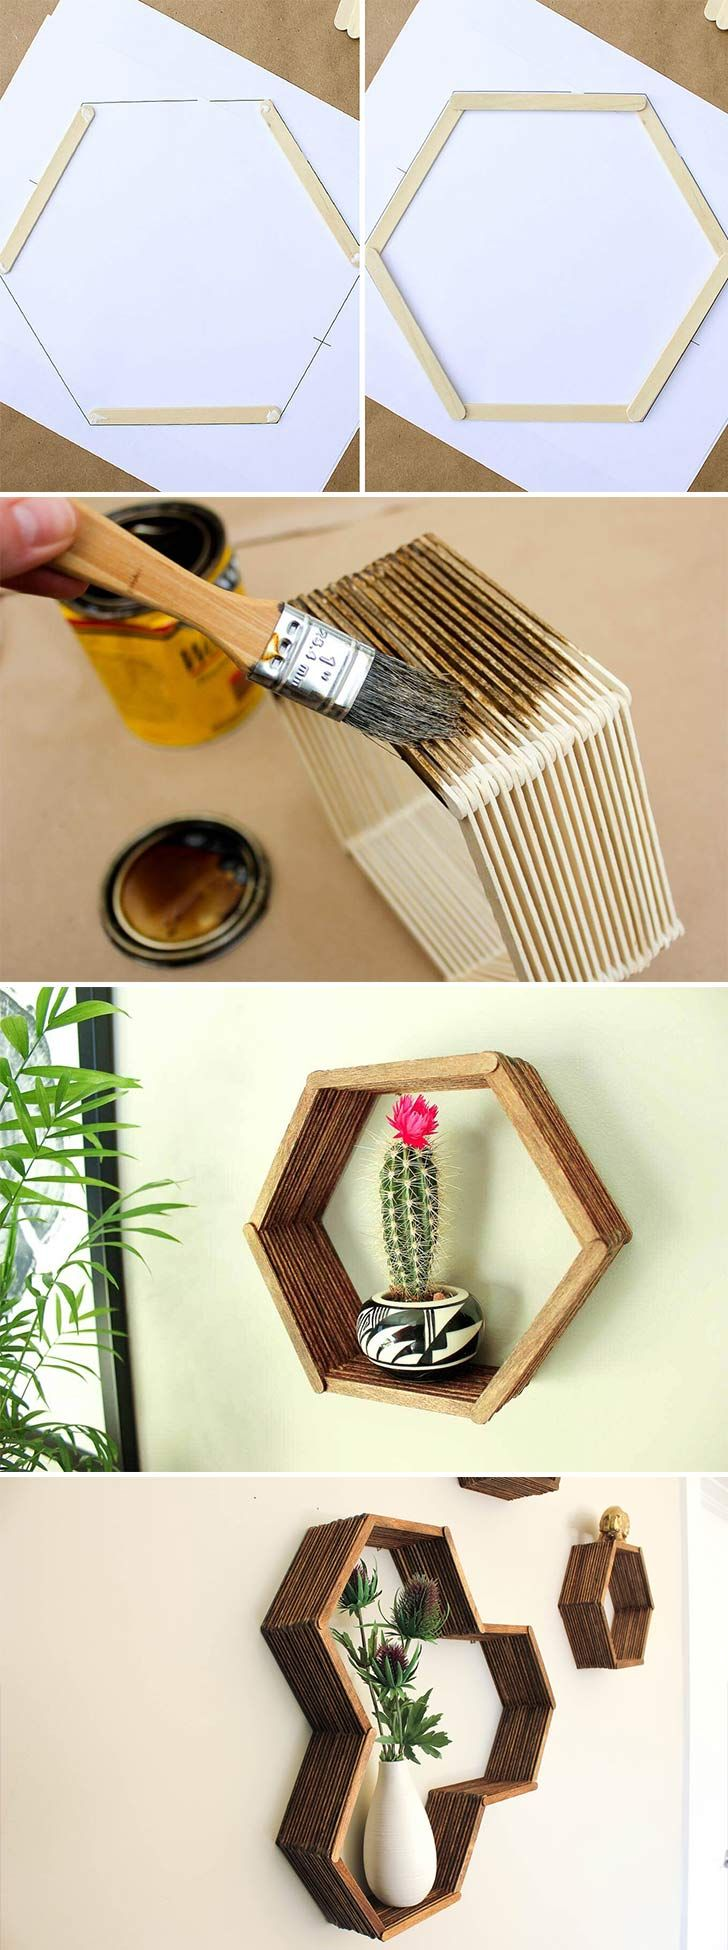 40 amazing diy home decor ideas that wont look diyed page 11 of 40 - Diy Decor